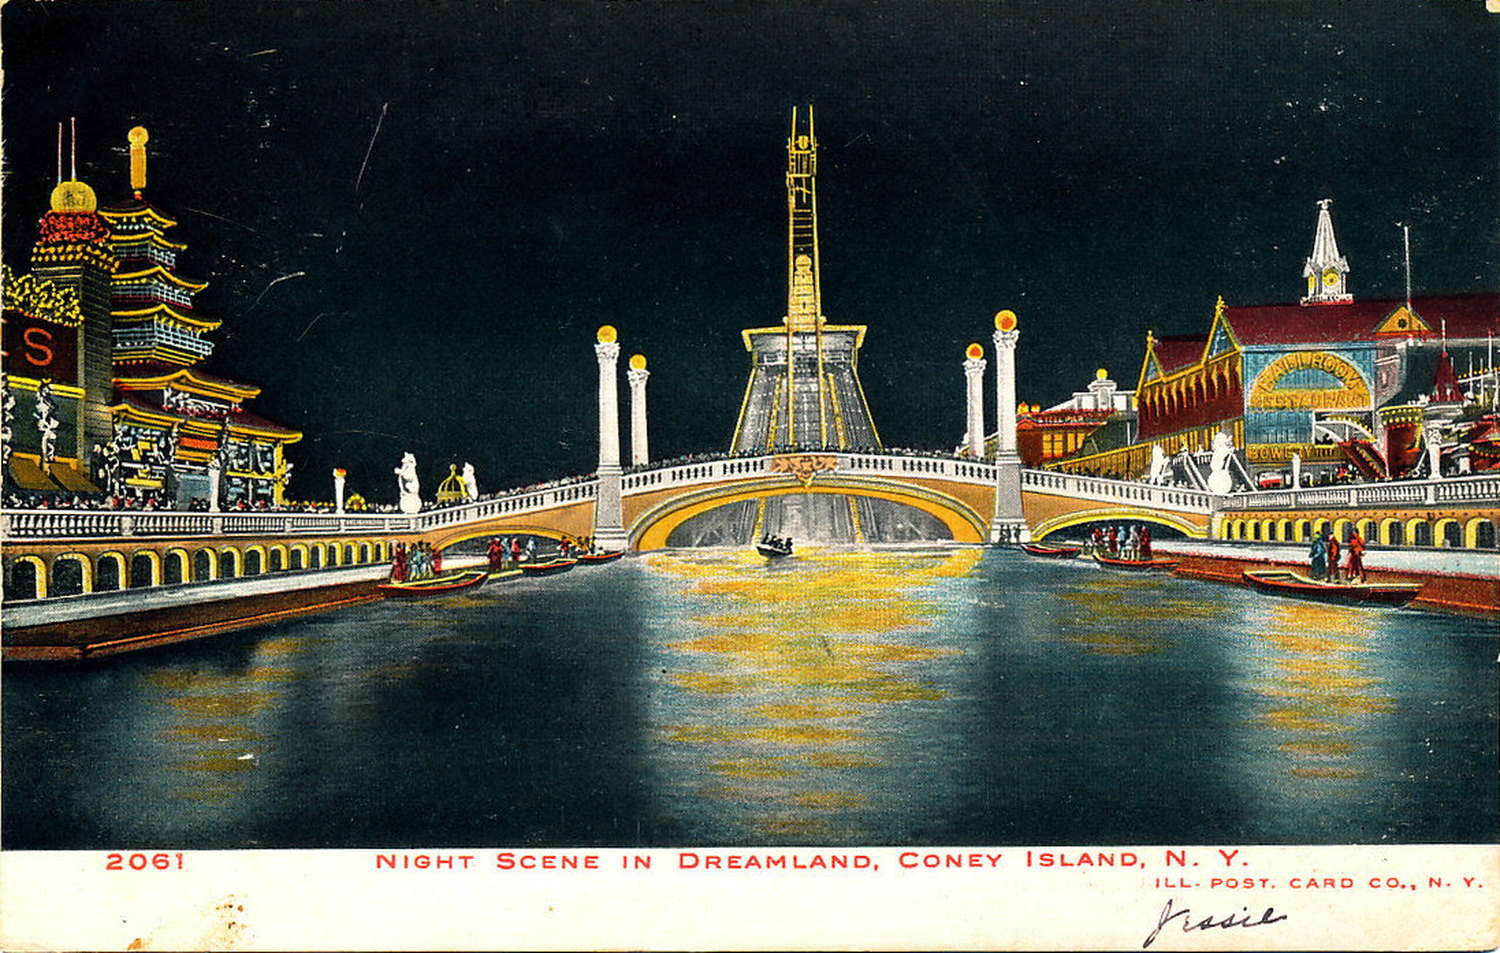 Old New York In Postcards #7 - Dreamland Coney Island Part 1